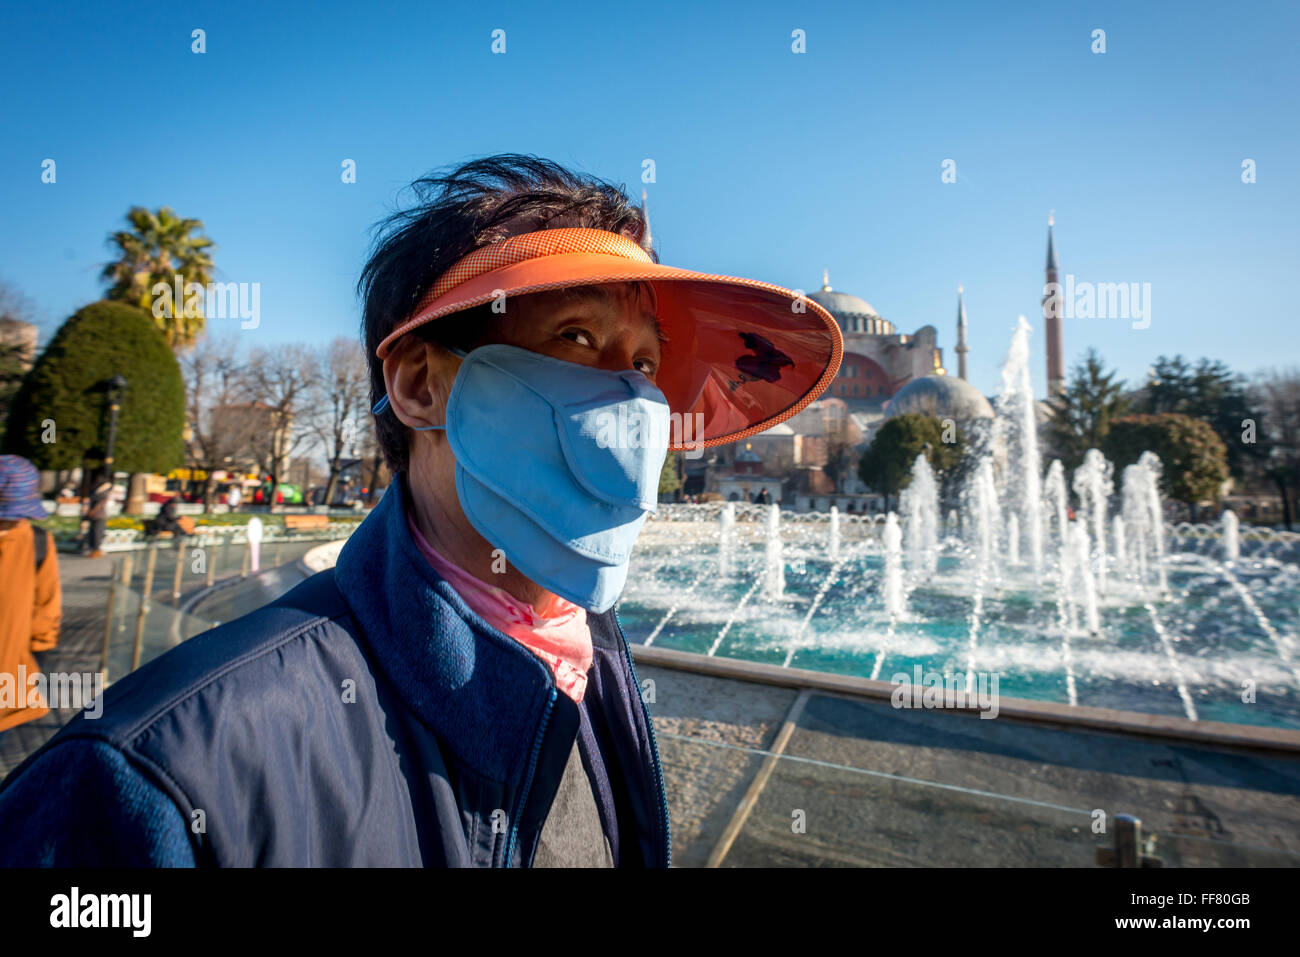 A Japanese tourist wearing a face-mask near the Sultan Ahmed Mosque in Istanbul, Turkey. - Stock Image